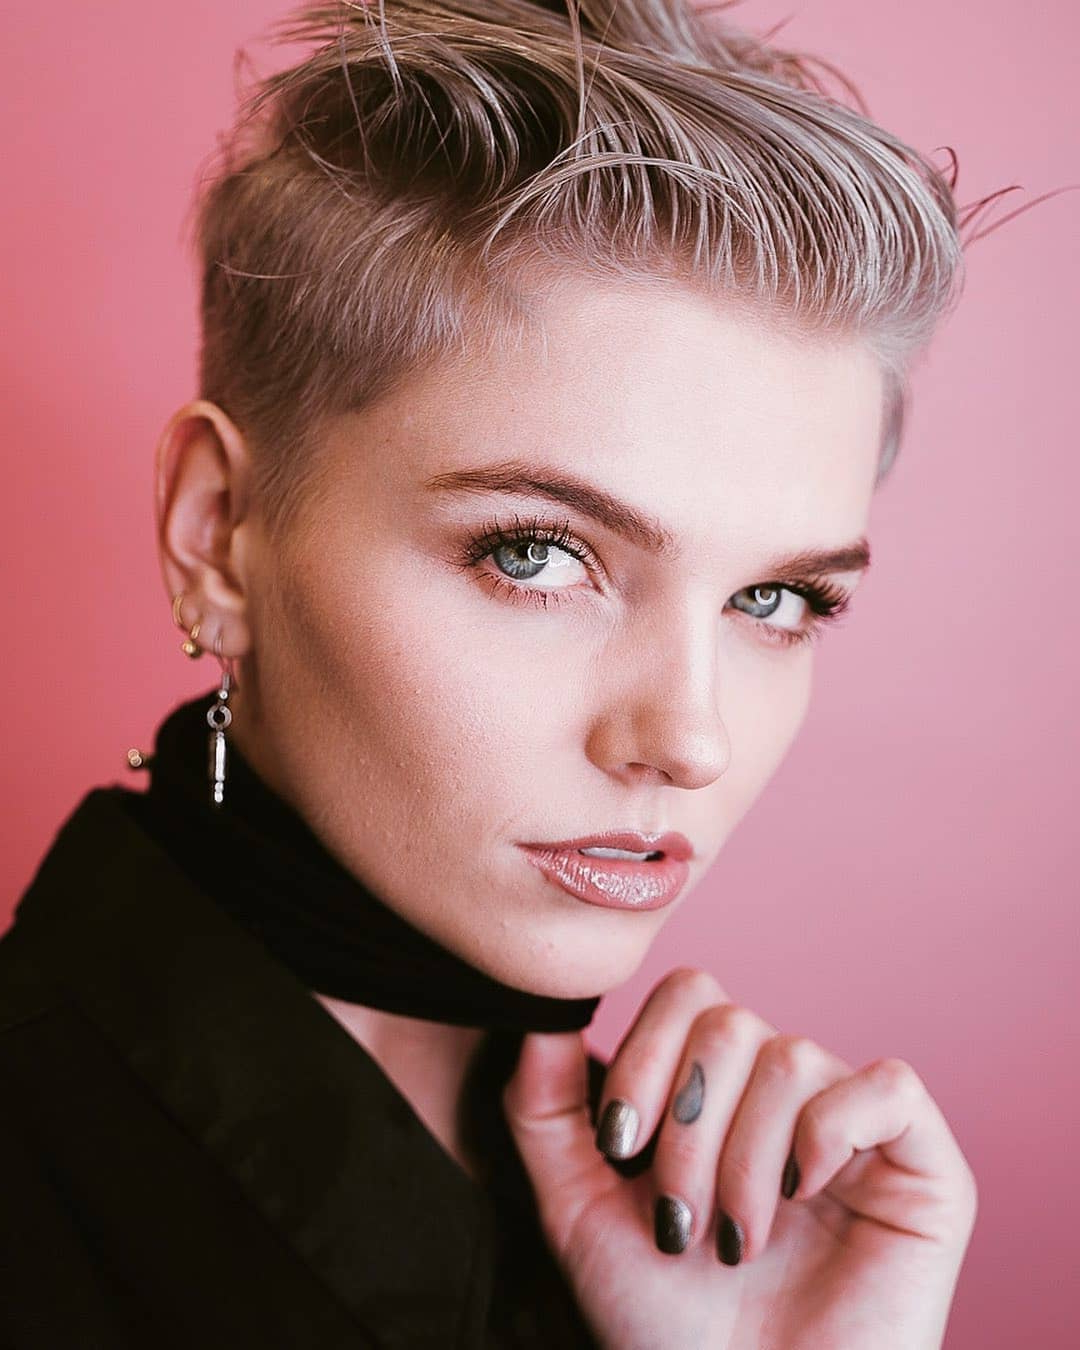 25 New Best Pixie Haircut Ideas For 2020 – Discover Beauty Intended For Most Recent Undercut Pixie Hairstyles With Hair Tattoo (View 2 of 20)